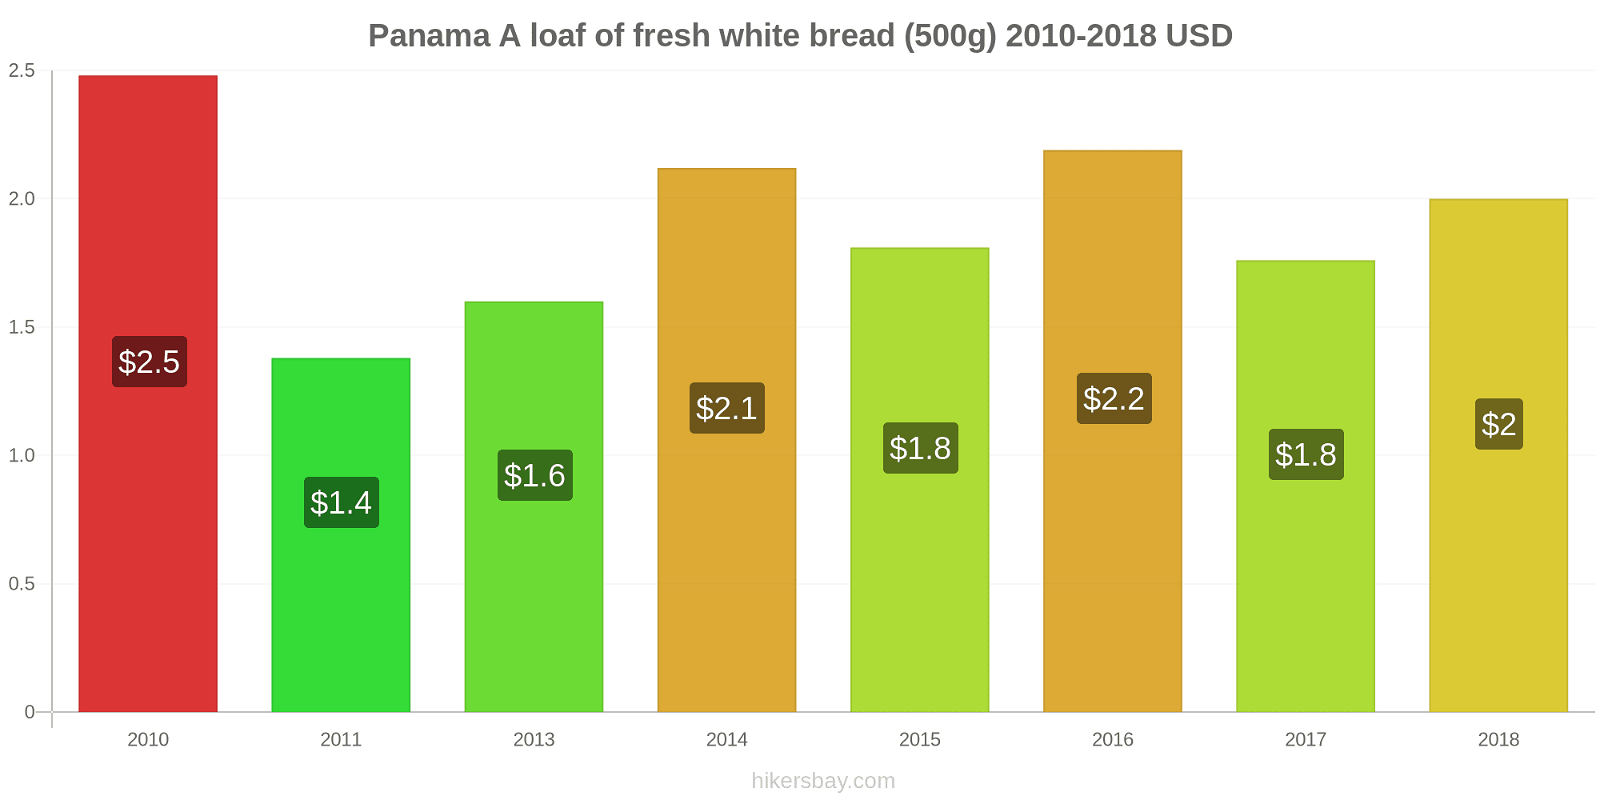 Panama price changes A loaf of fresh white bread (500g) hikersbay.com